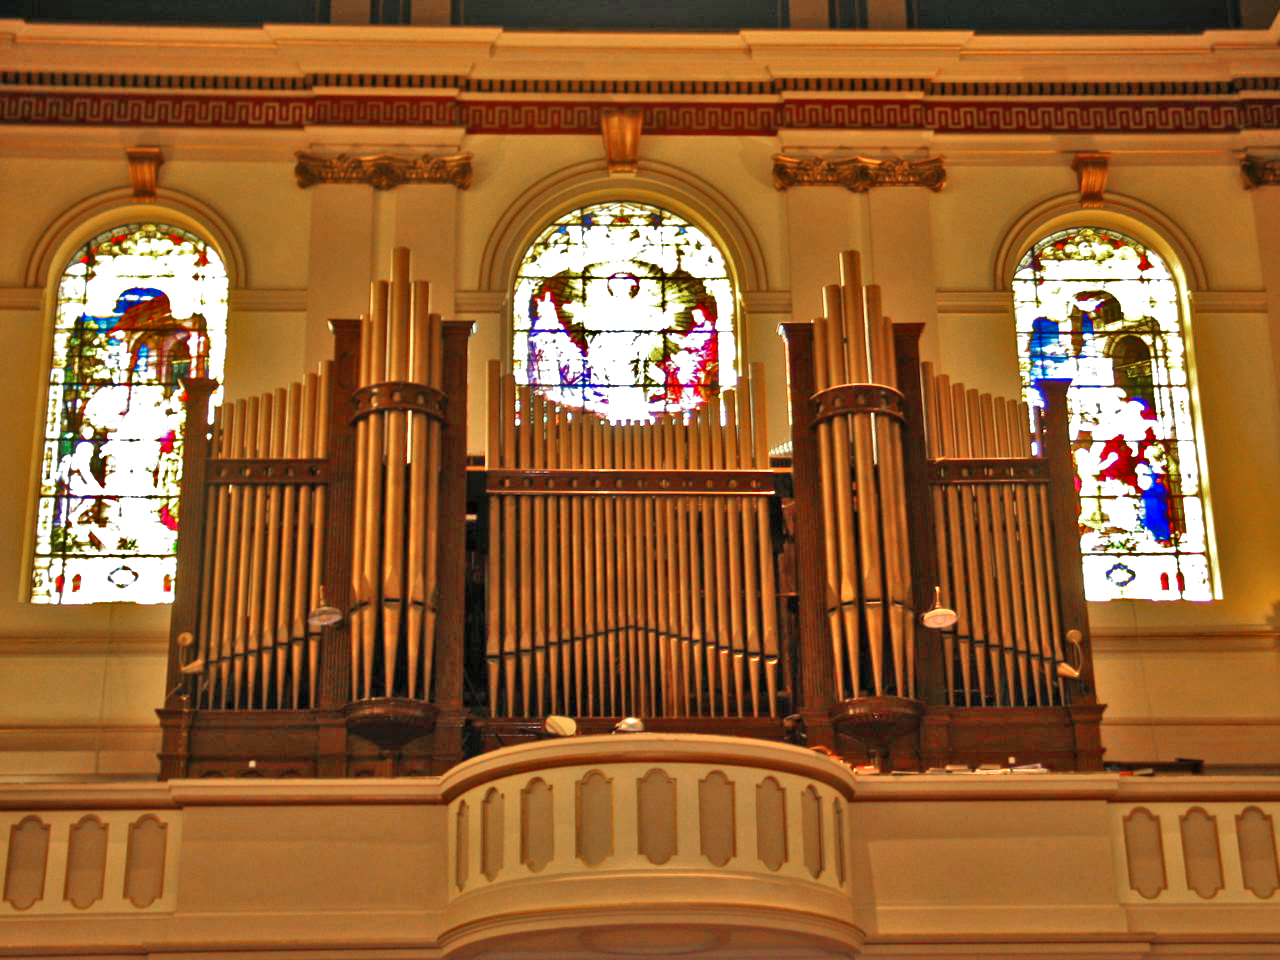 Reuben Midmer & Son organ case (1911) in St. Saviour Catholic Church - Brooklyn, N.Y. (photo: Sebastian M. Gluck)